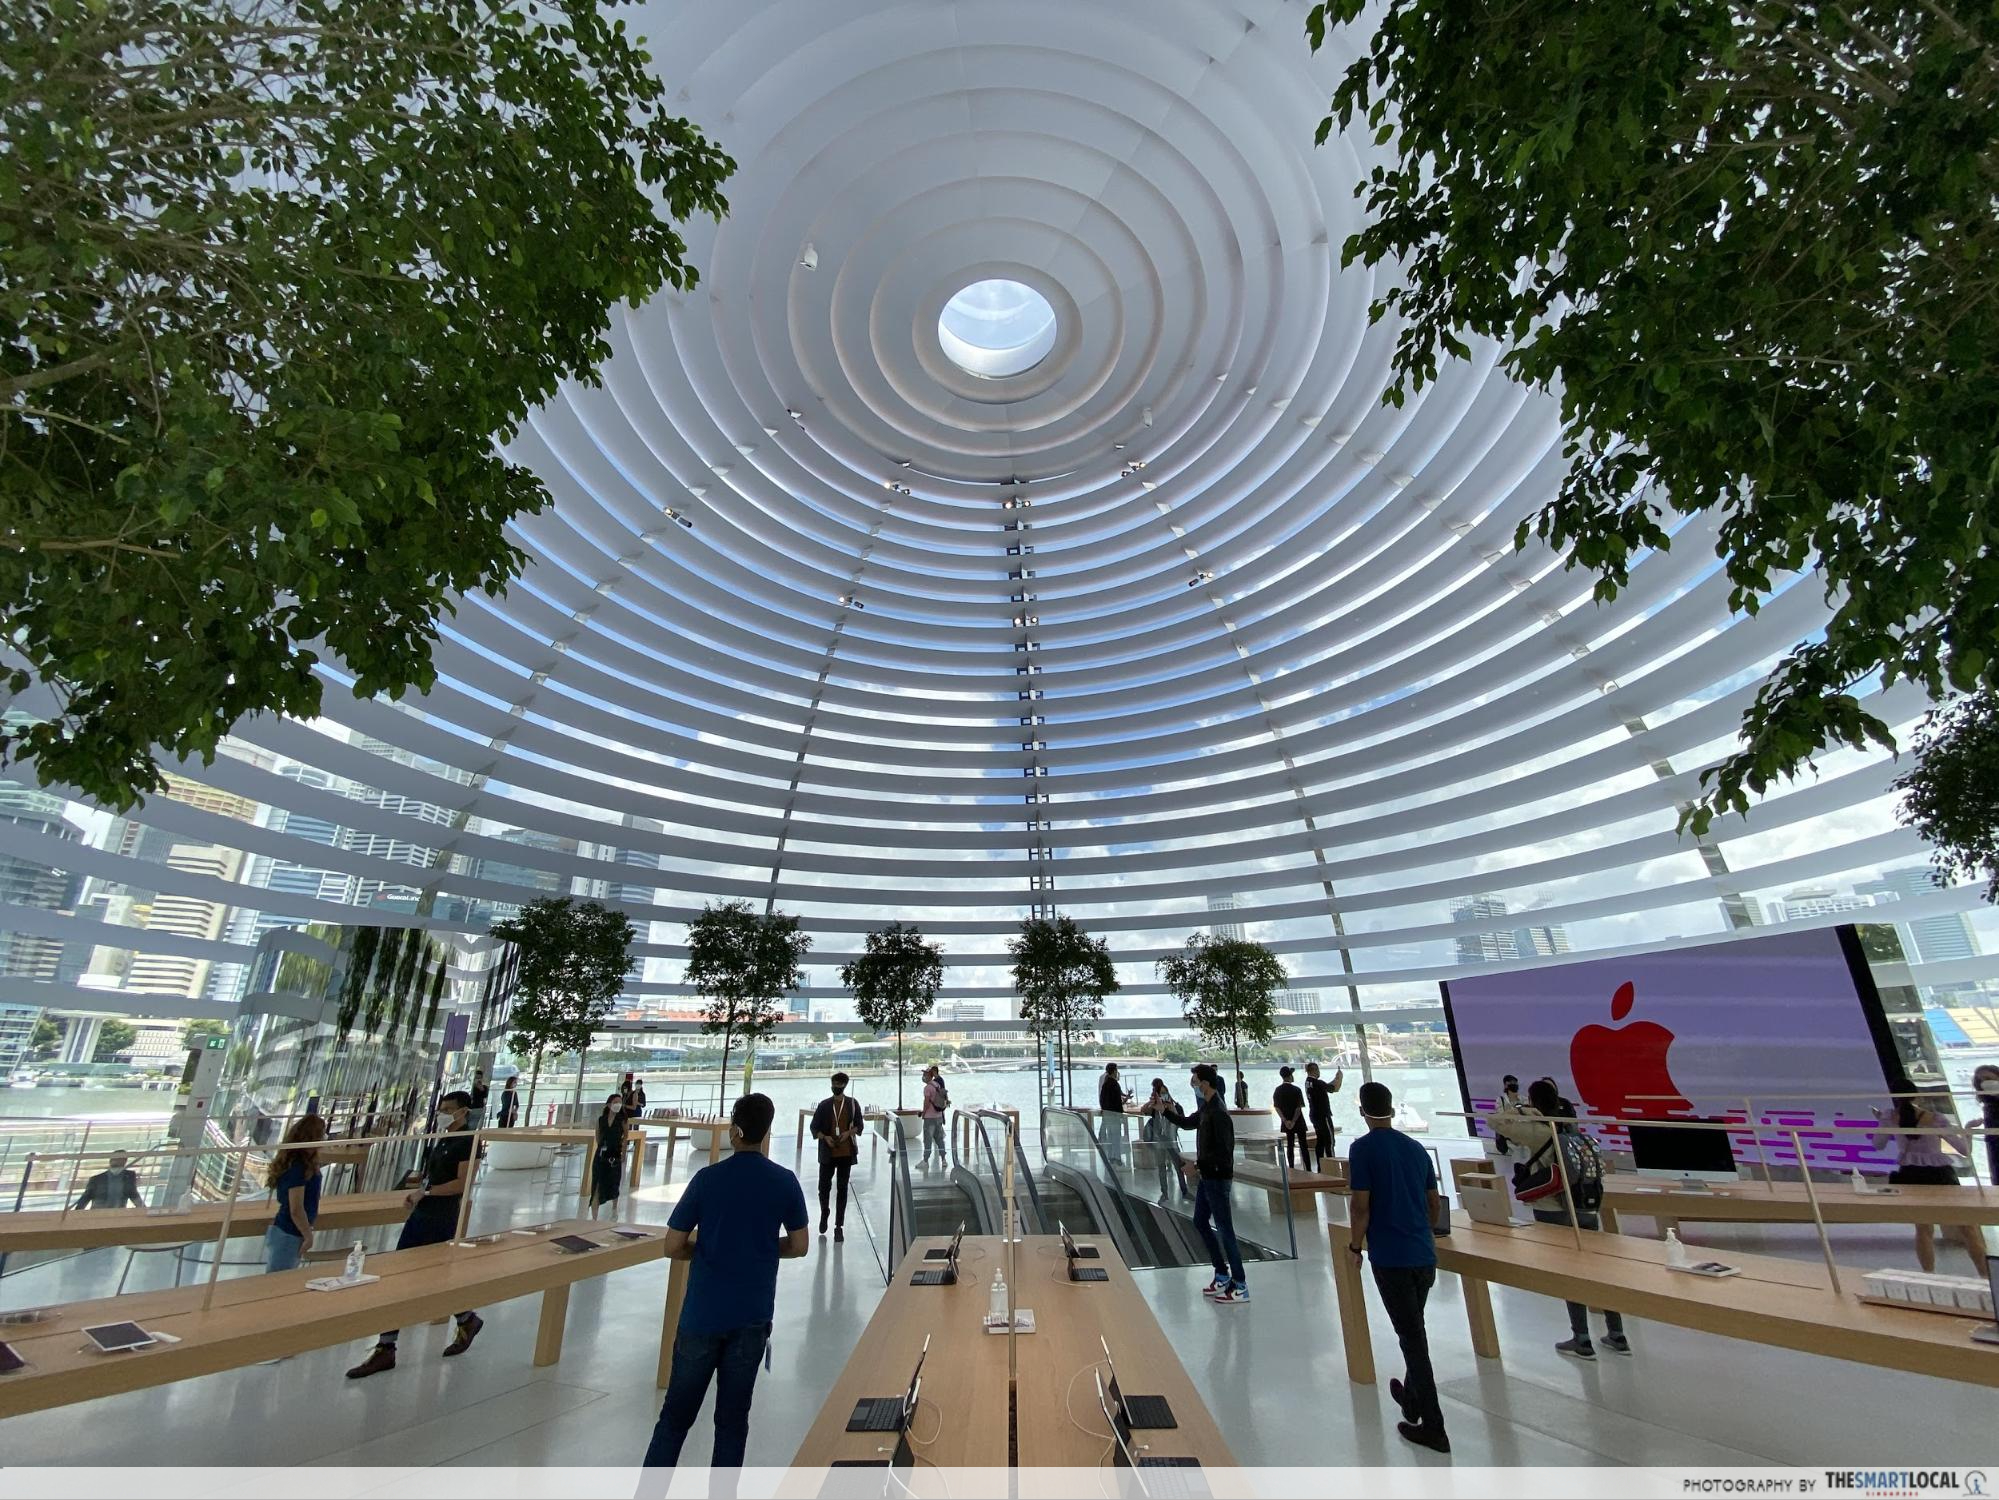 apple store marina bay sands - the interior of the glass dome with oculus